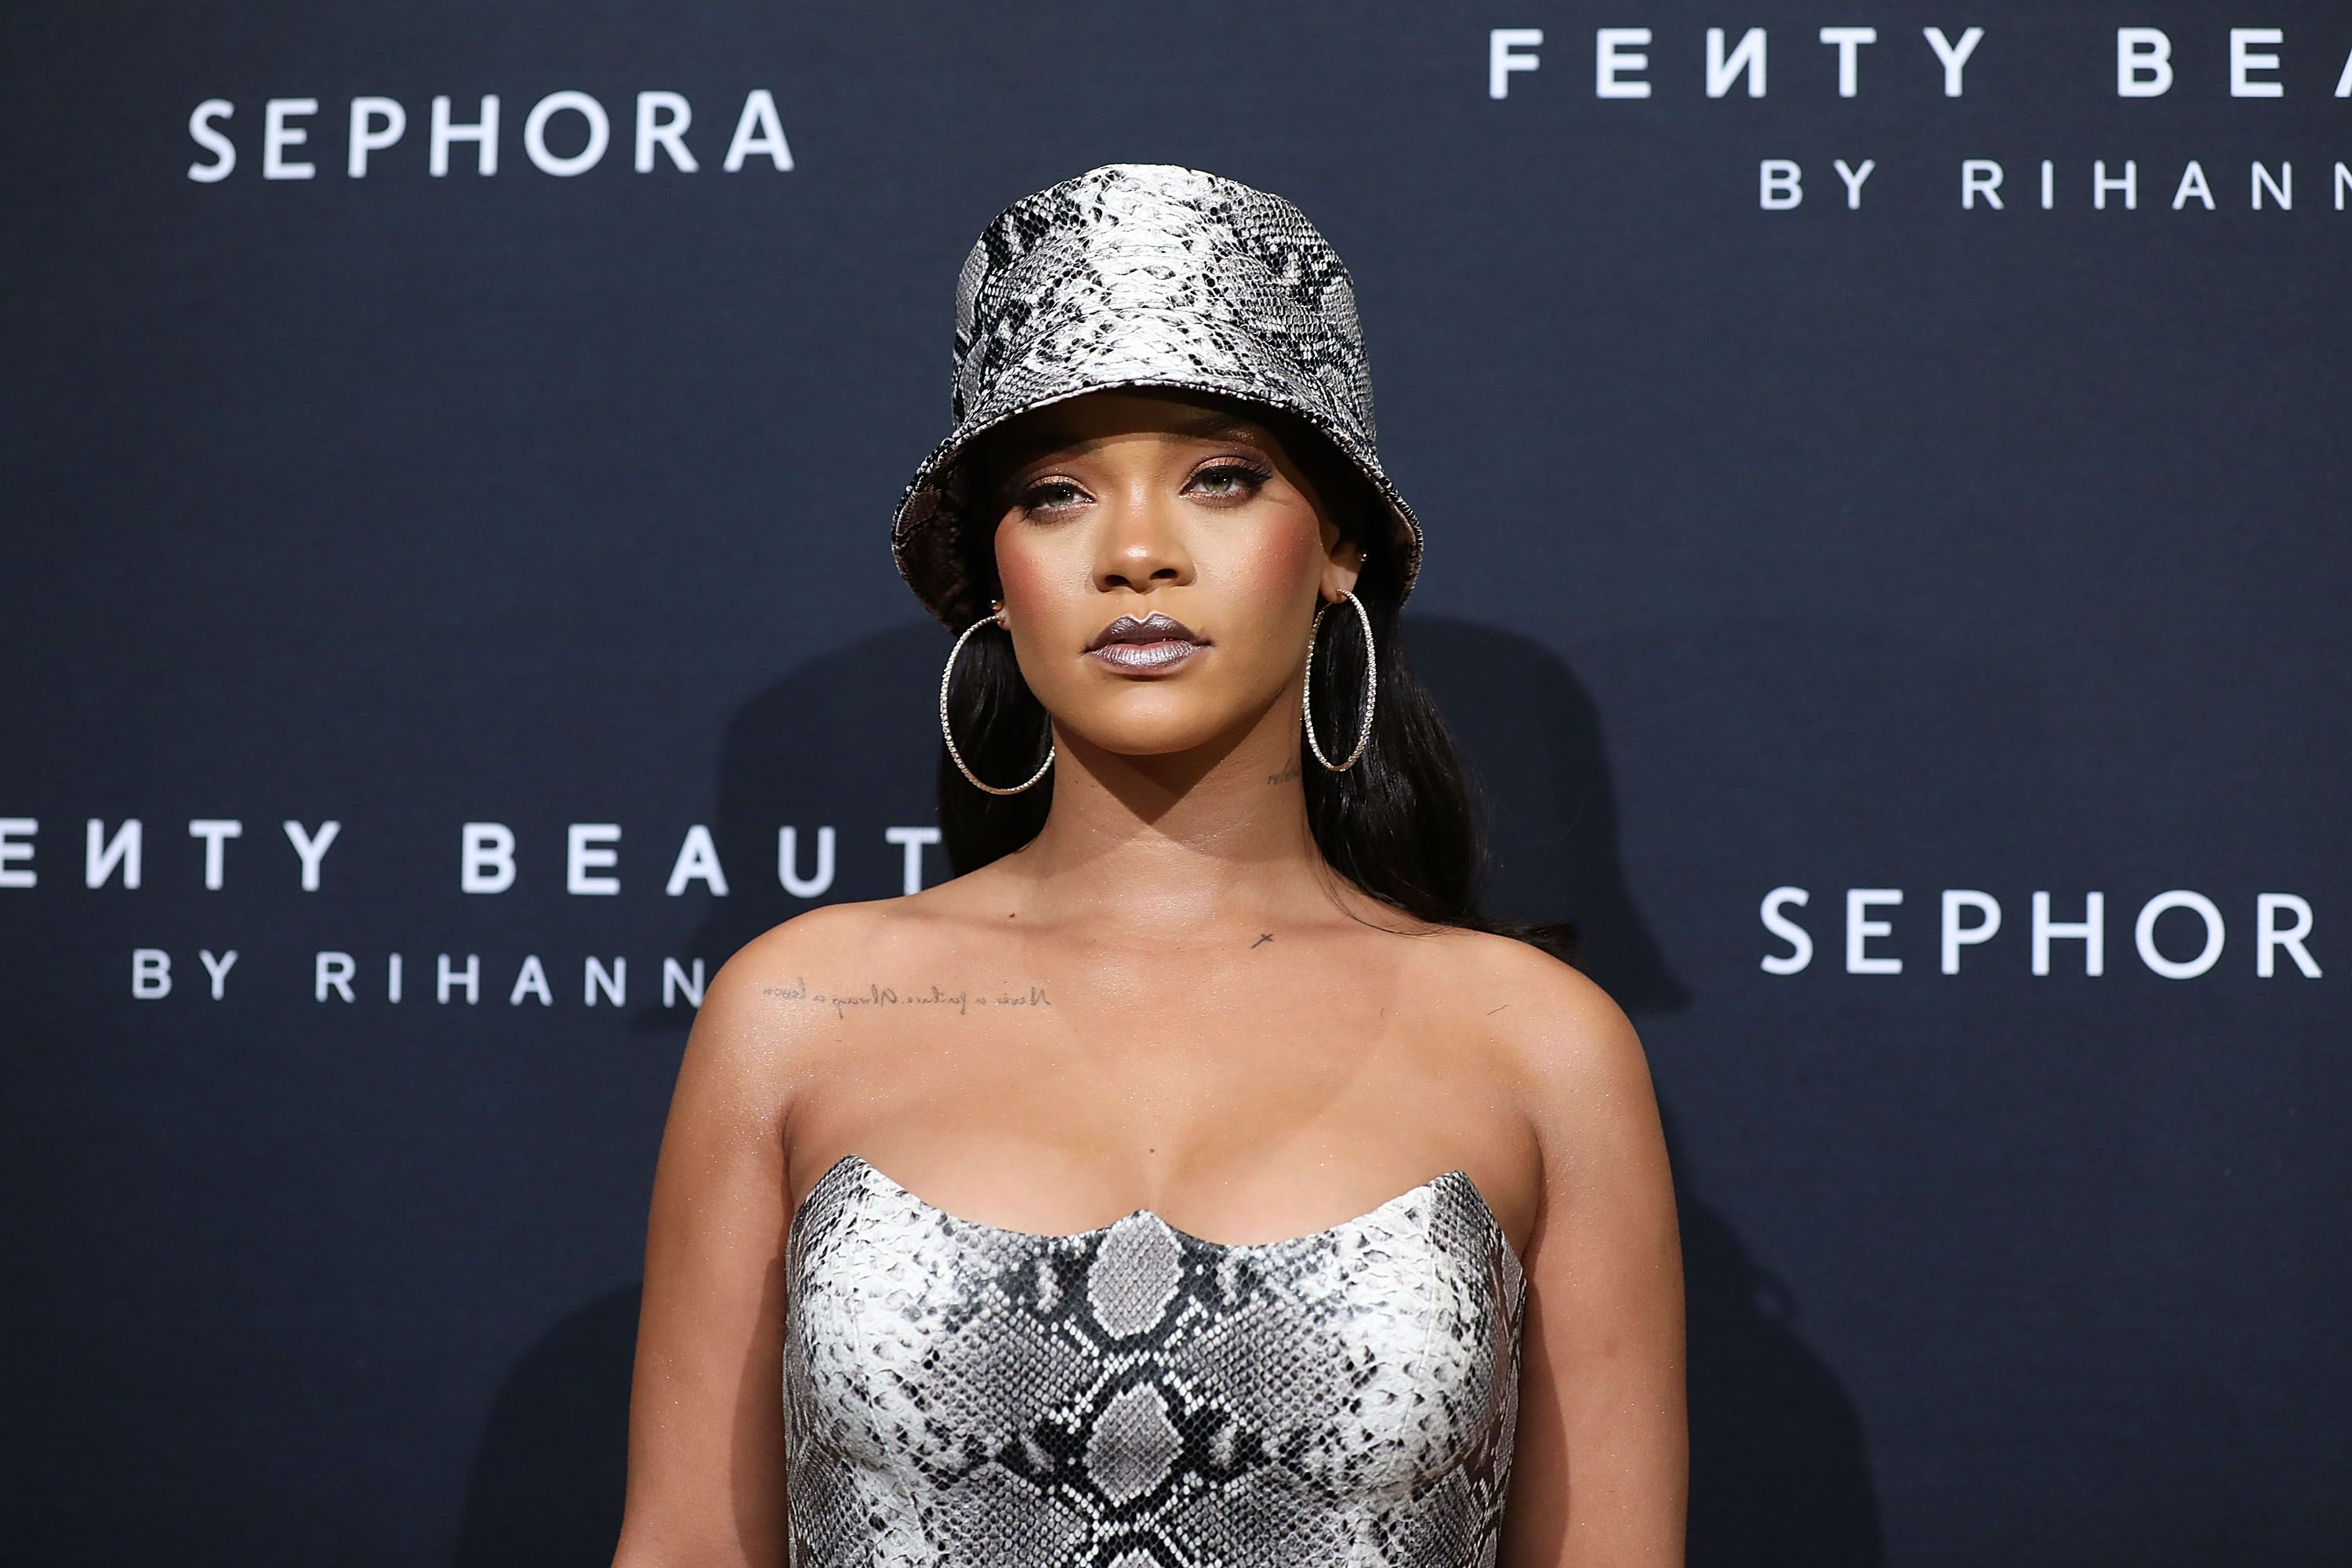 Rihanna has reportedly split up with her boyfriend